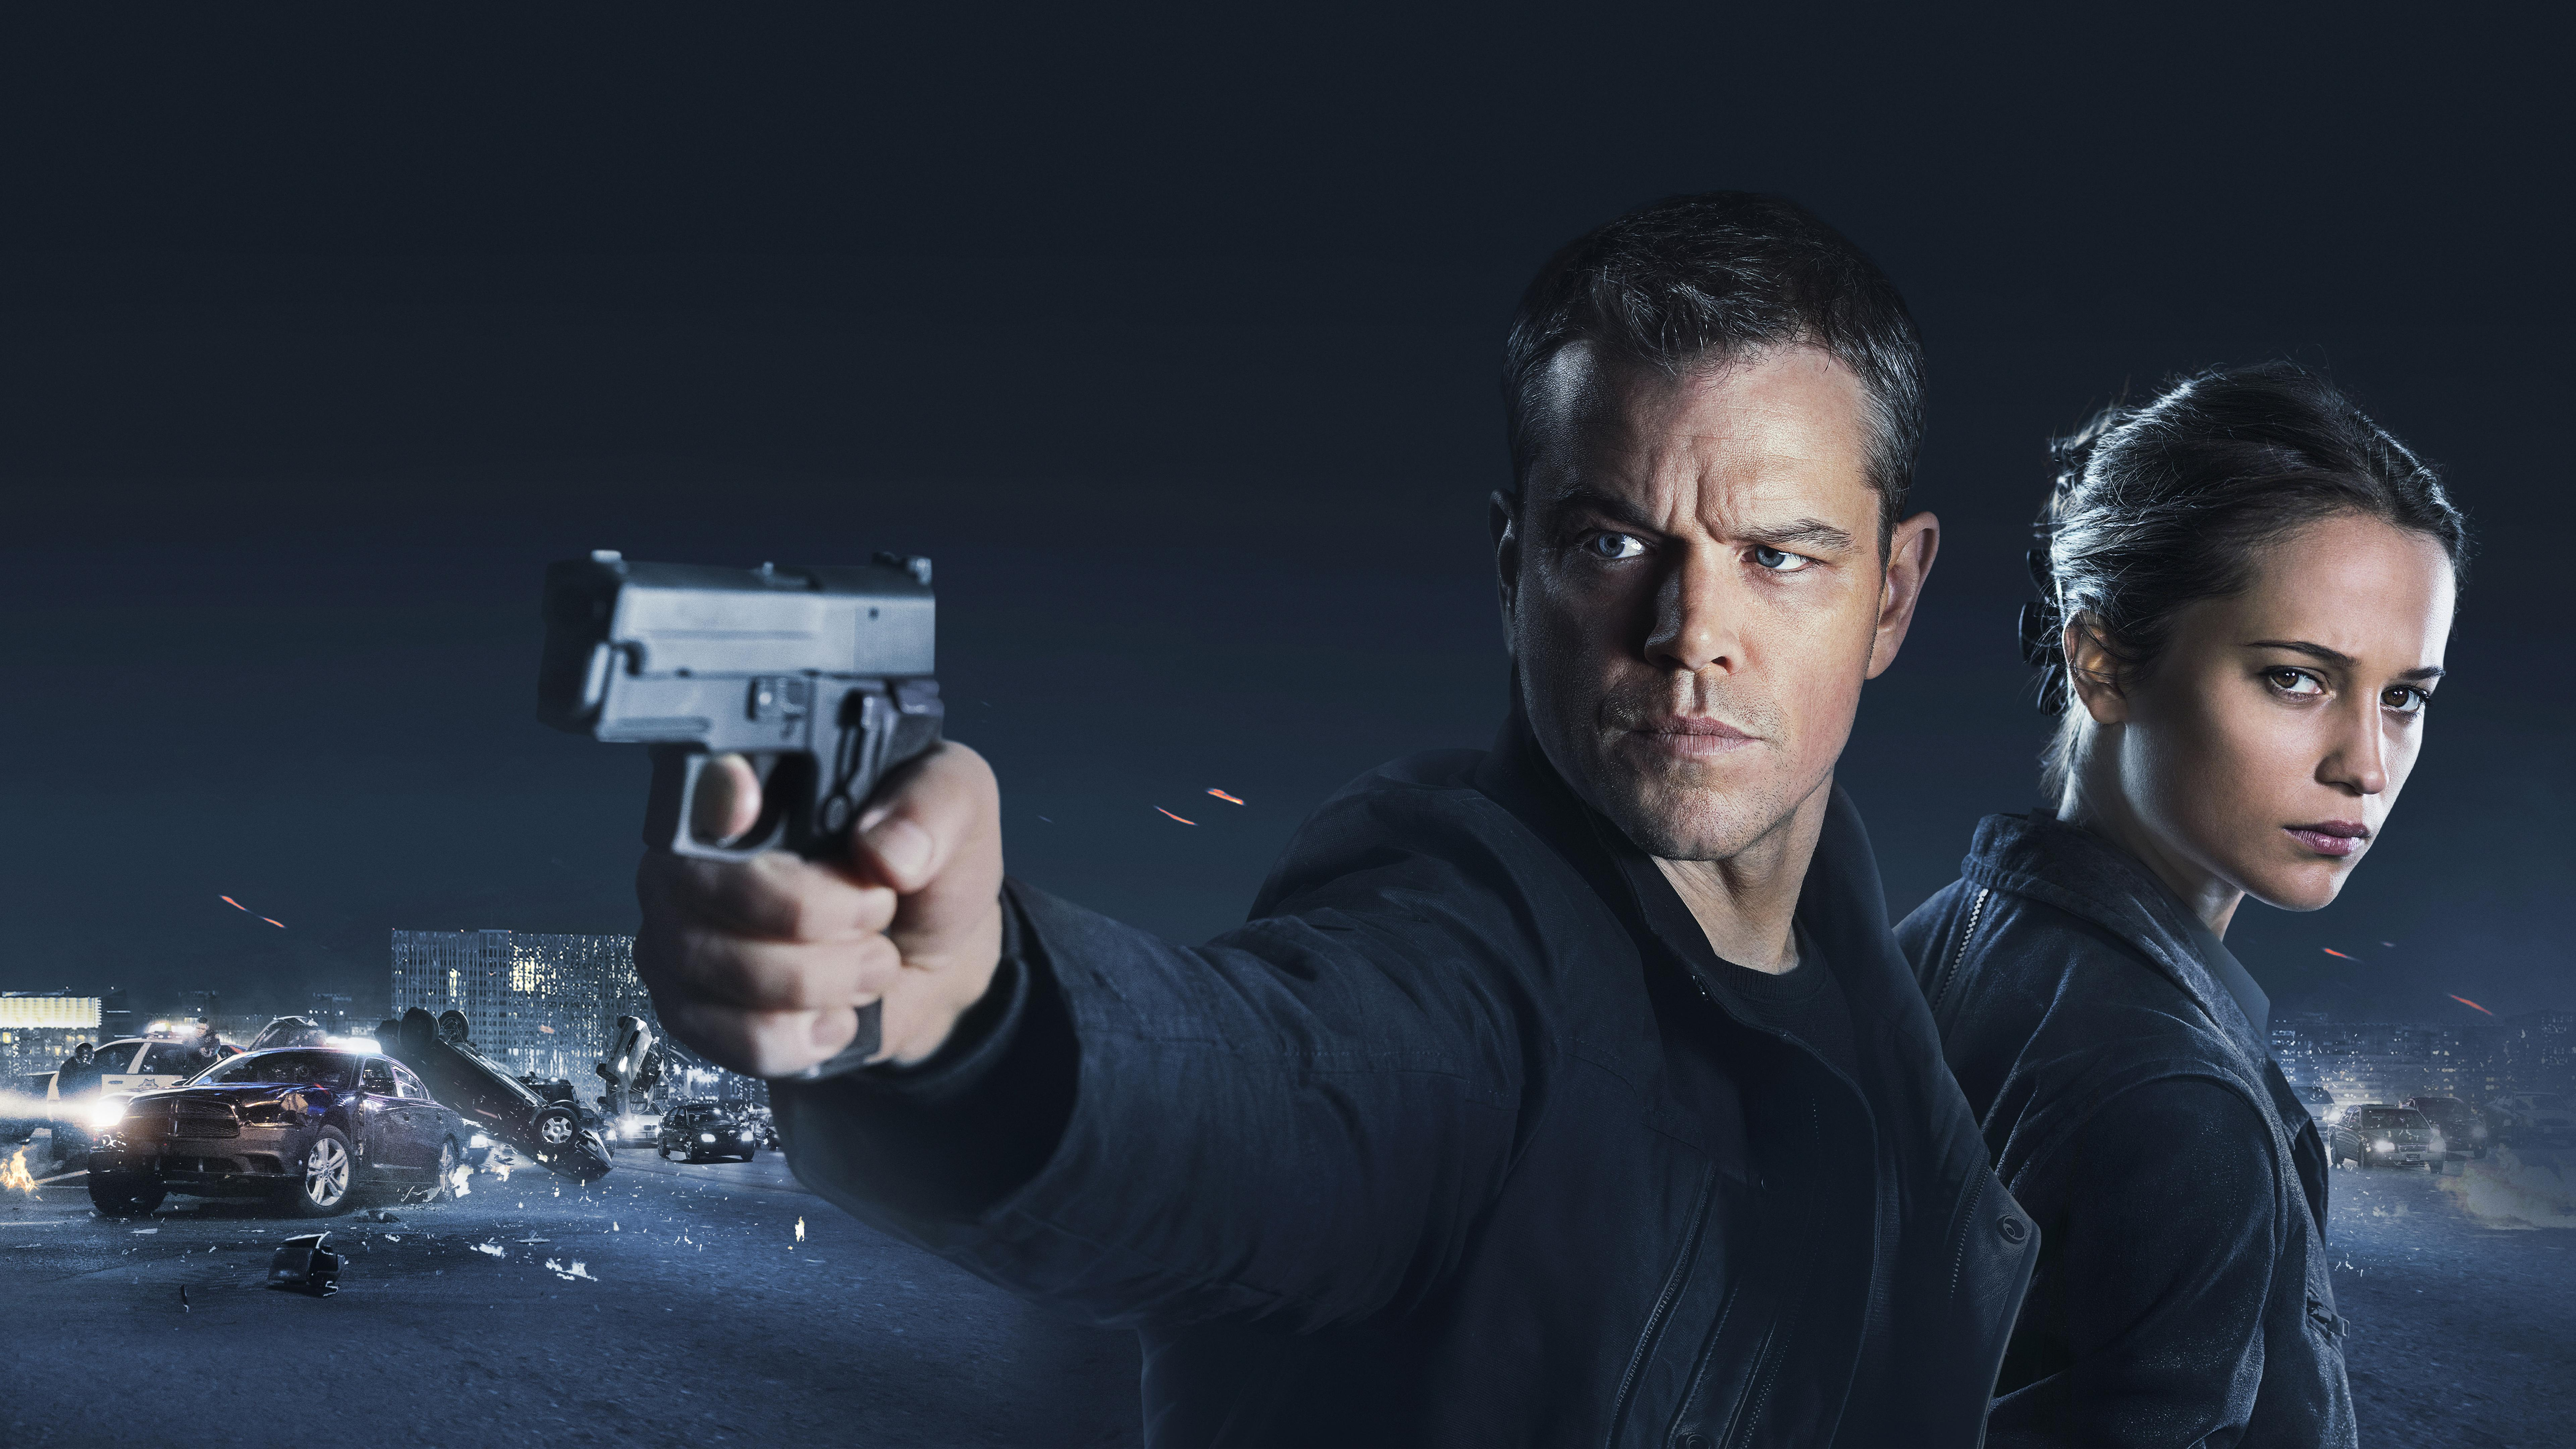 Bourne Identity Wallpapers